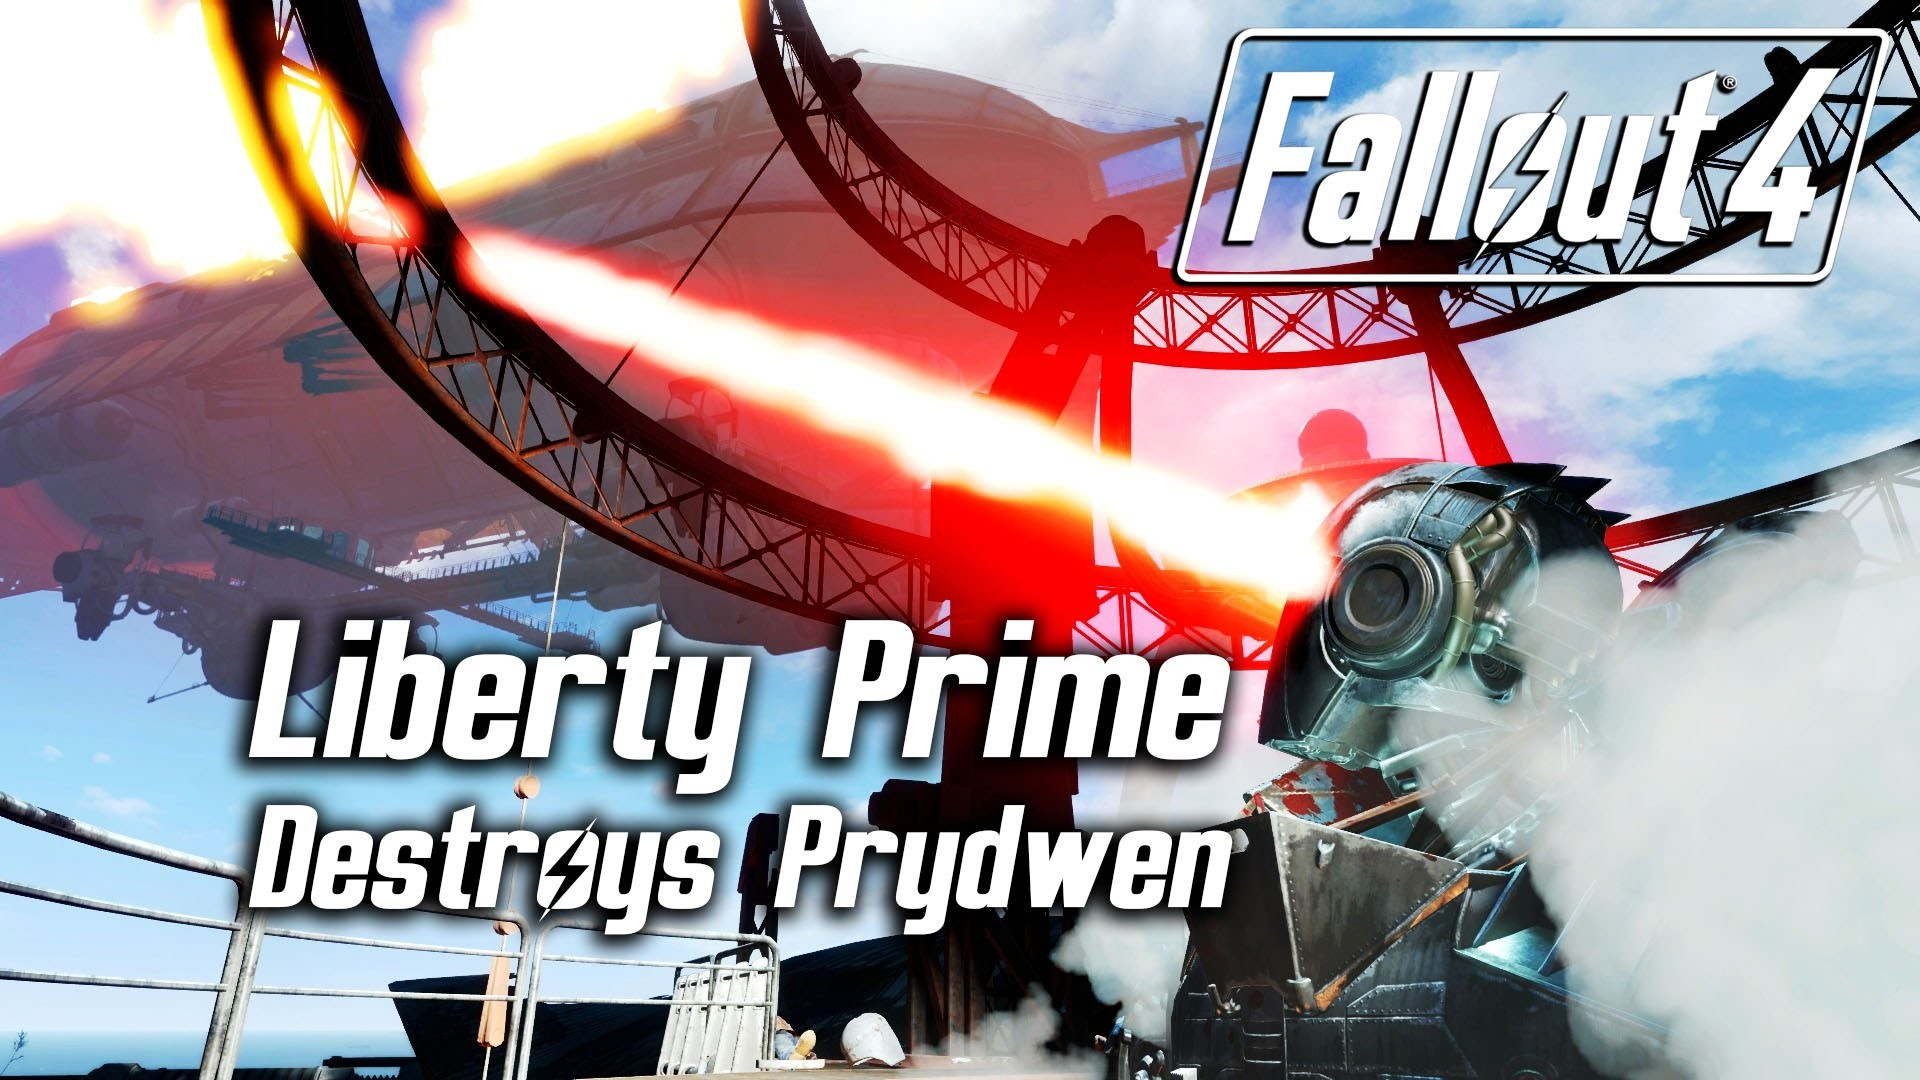 Fallout 4 – Liberty Prime destroys The Prydwen via her dual eye lasers –  YouTube